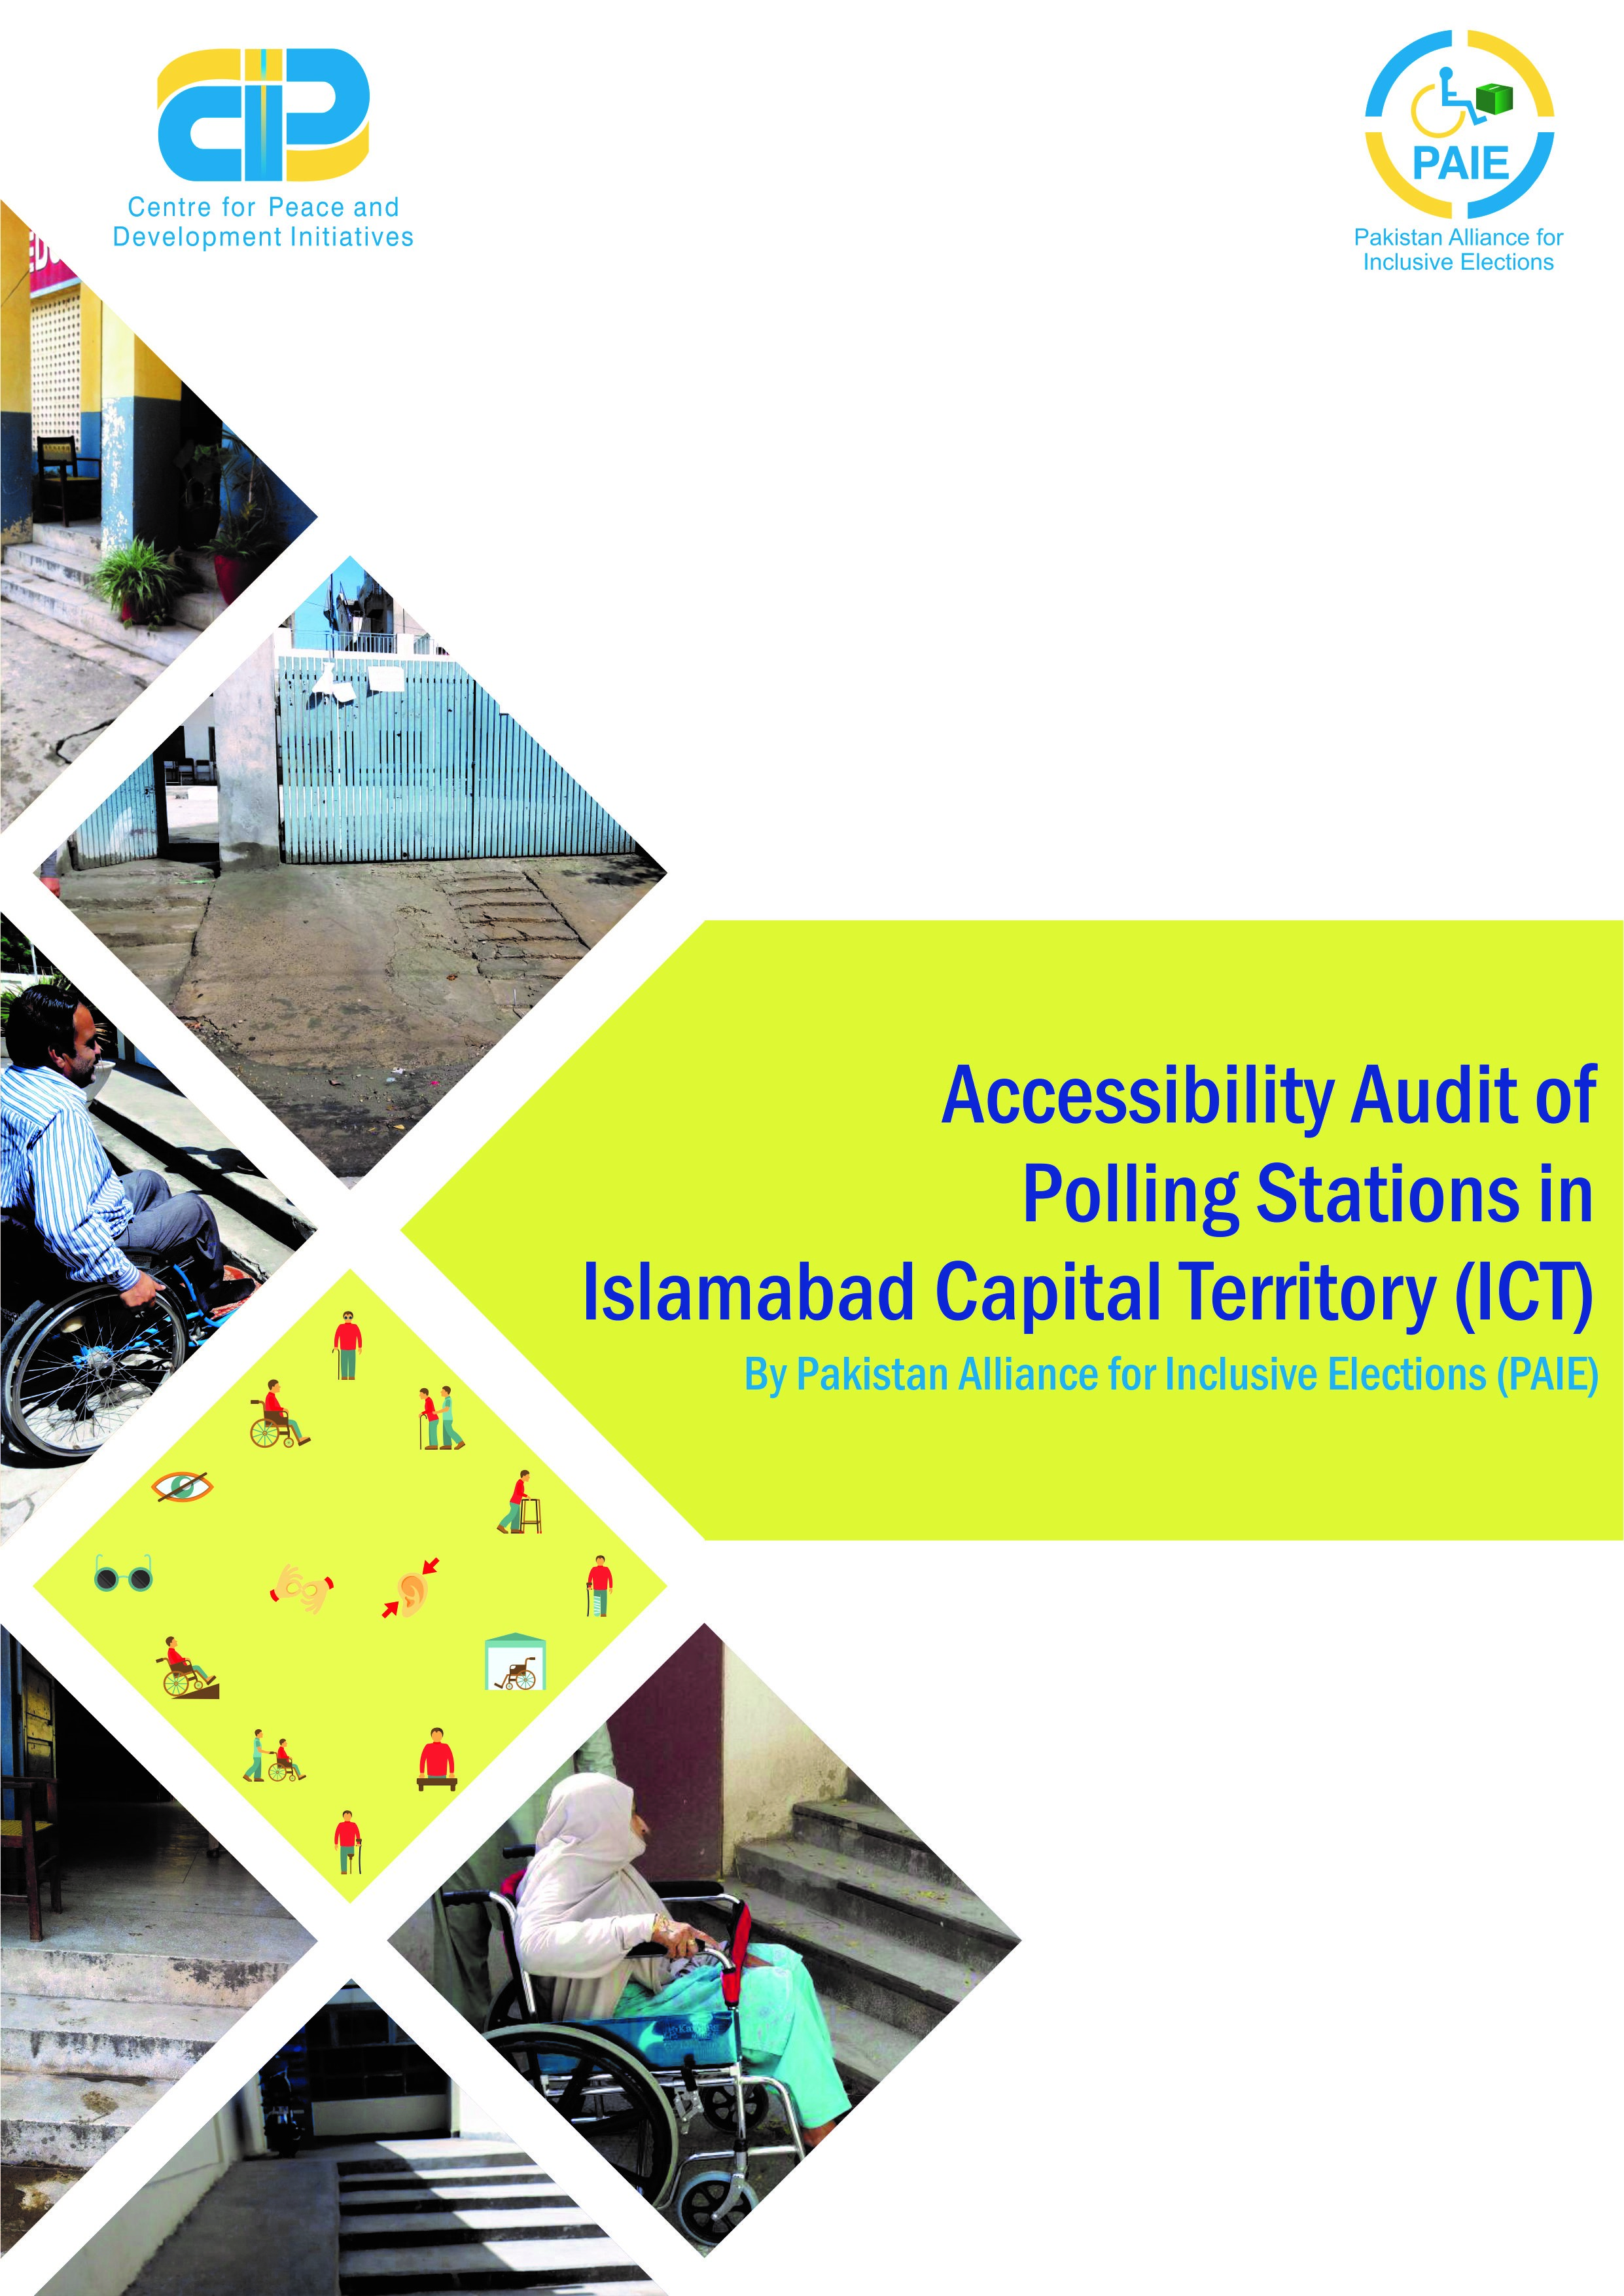 Accessibility Audit of Polling Stations in Islamabad